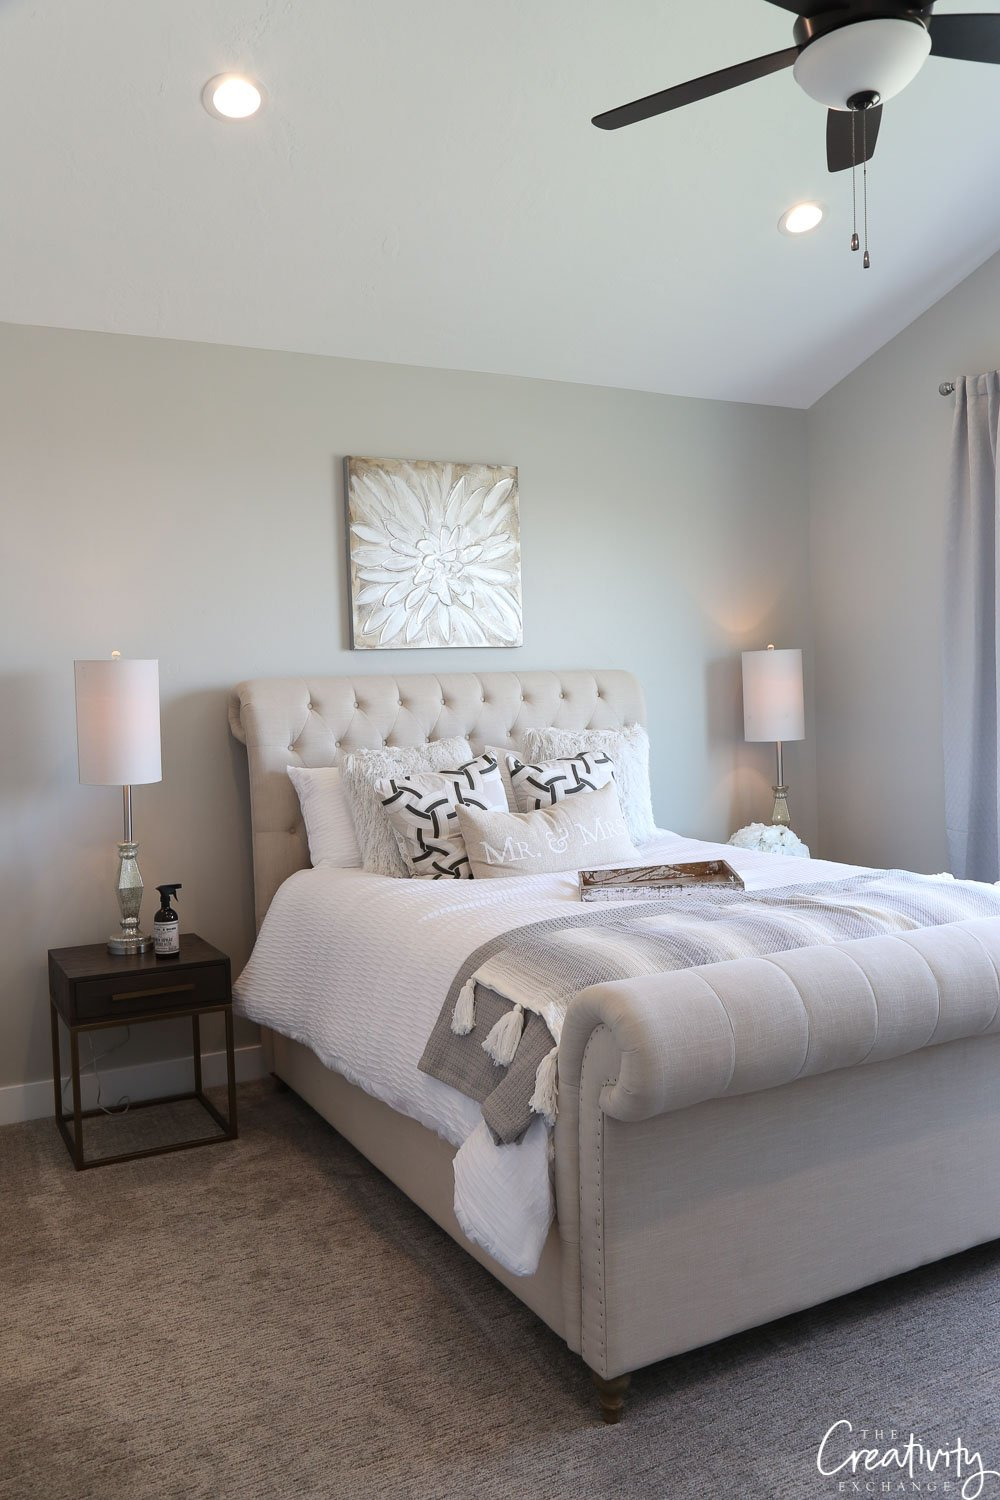 Wall Paint Color Is Sherwin Williams Repose Gray